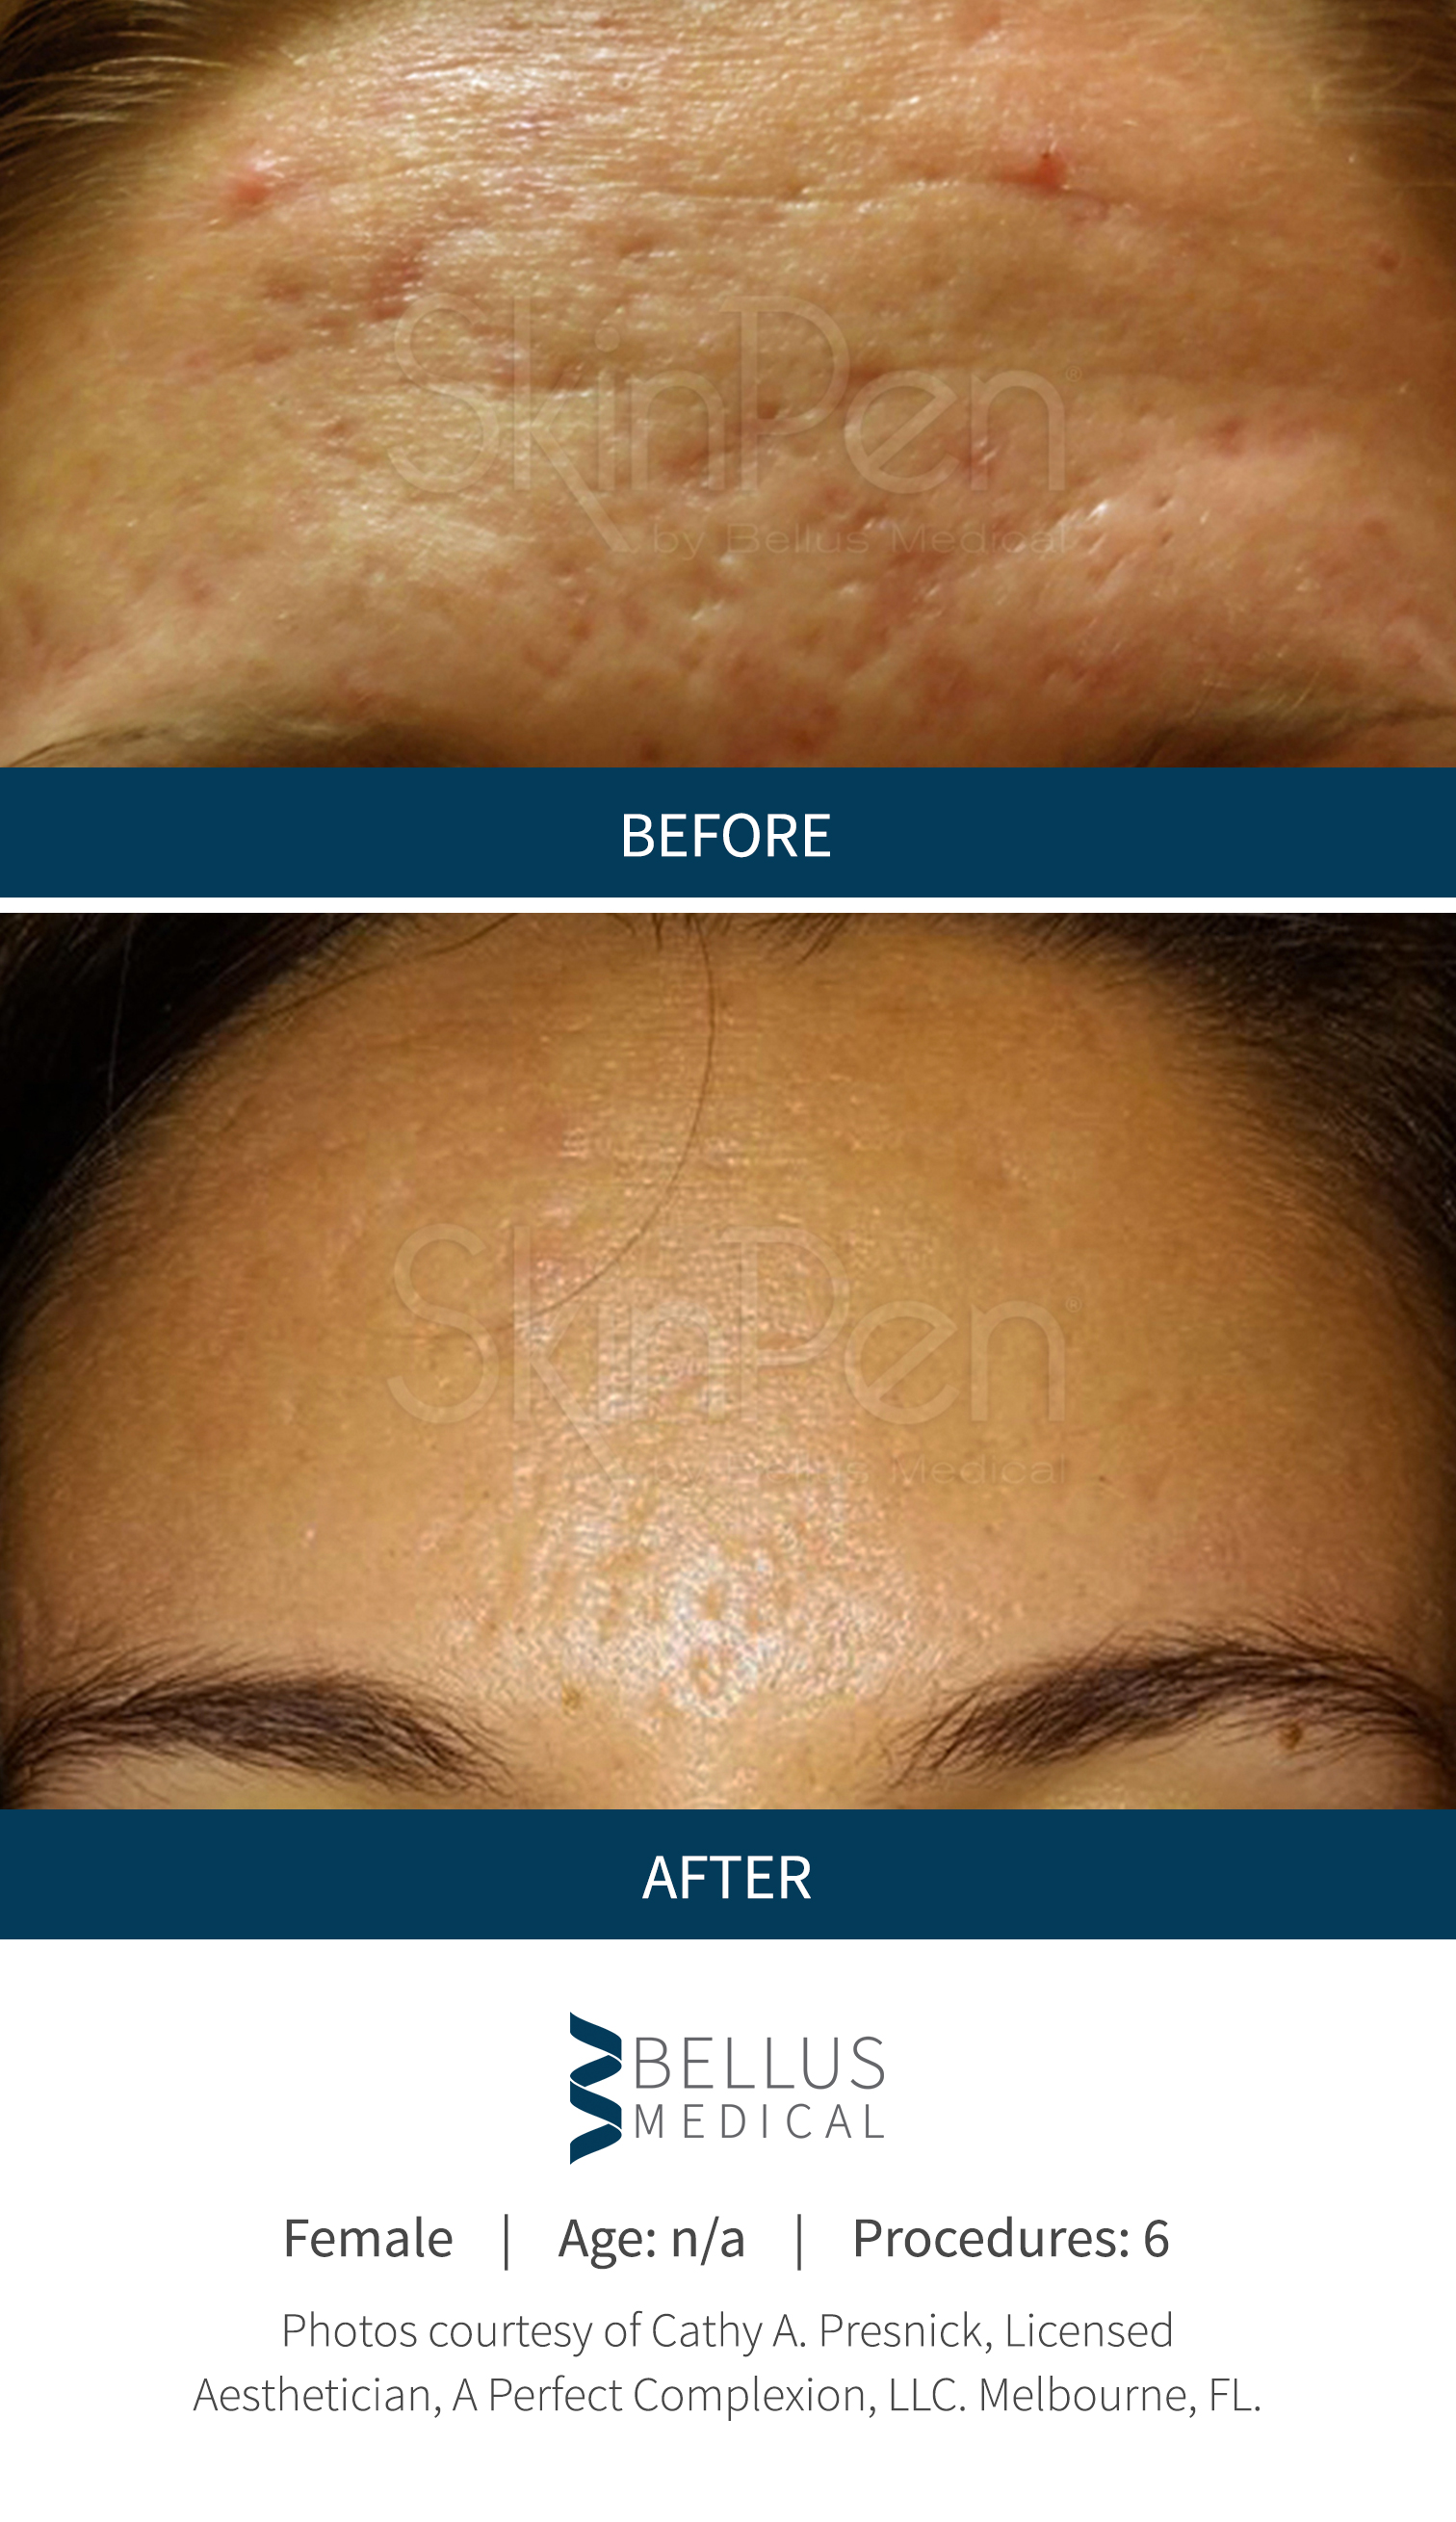 Fda Clearance Of The Skinpen 174 Precision Microneedling Device Makes It The Only Safe And Legally